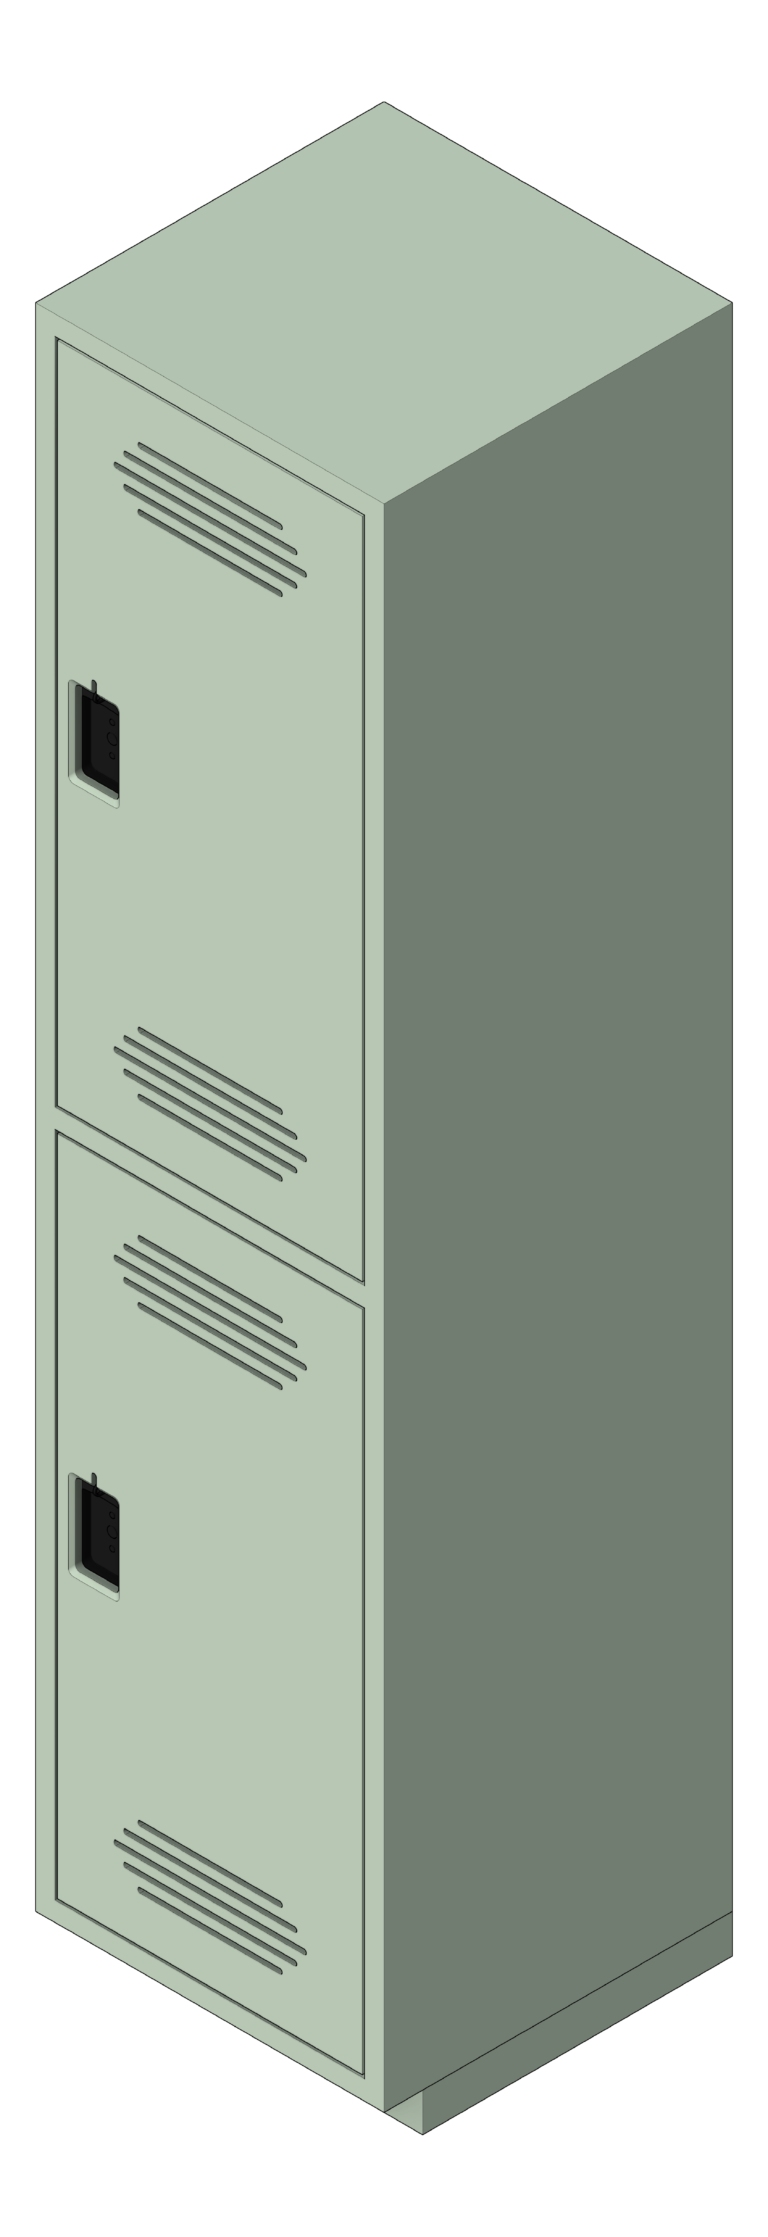 Locker_Plastic_ASI_TraditionalPlus_DoubleTier_3D Shaded